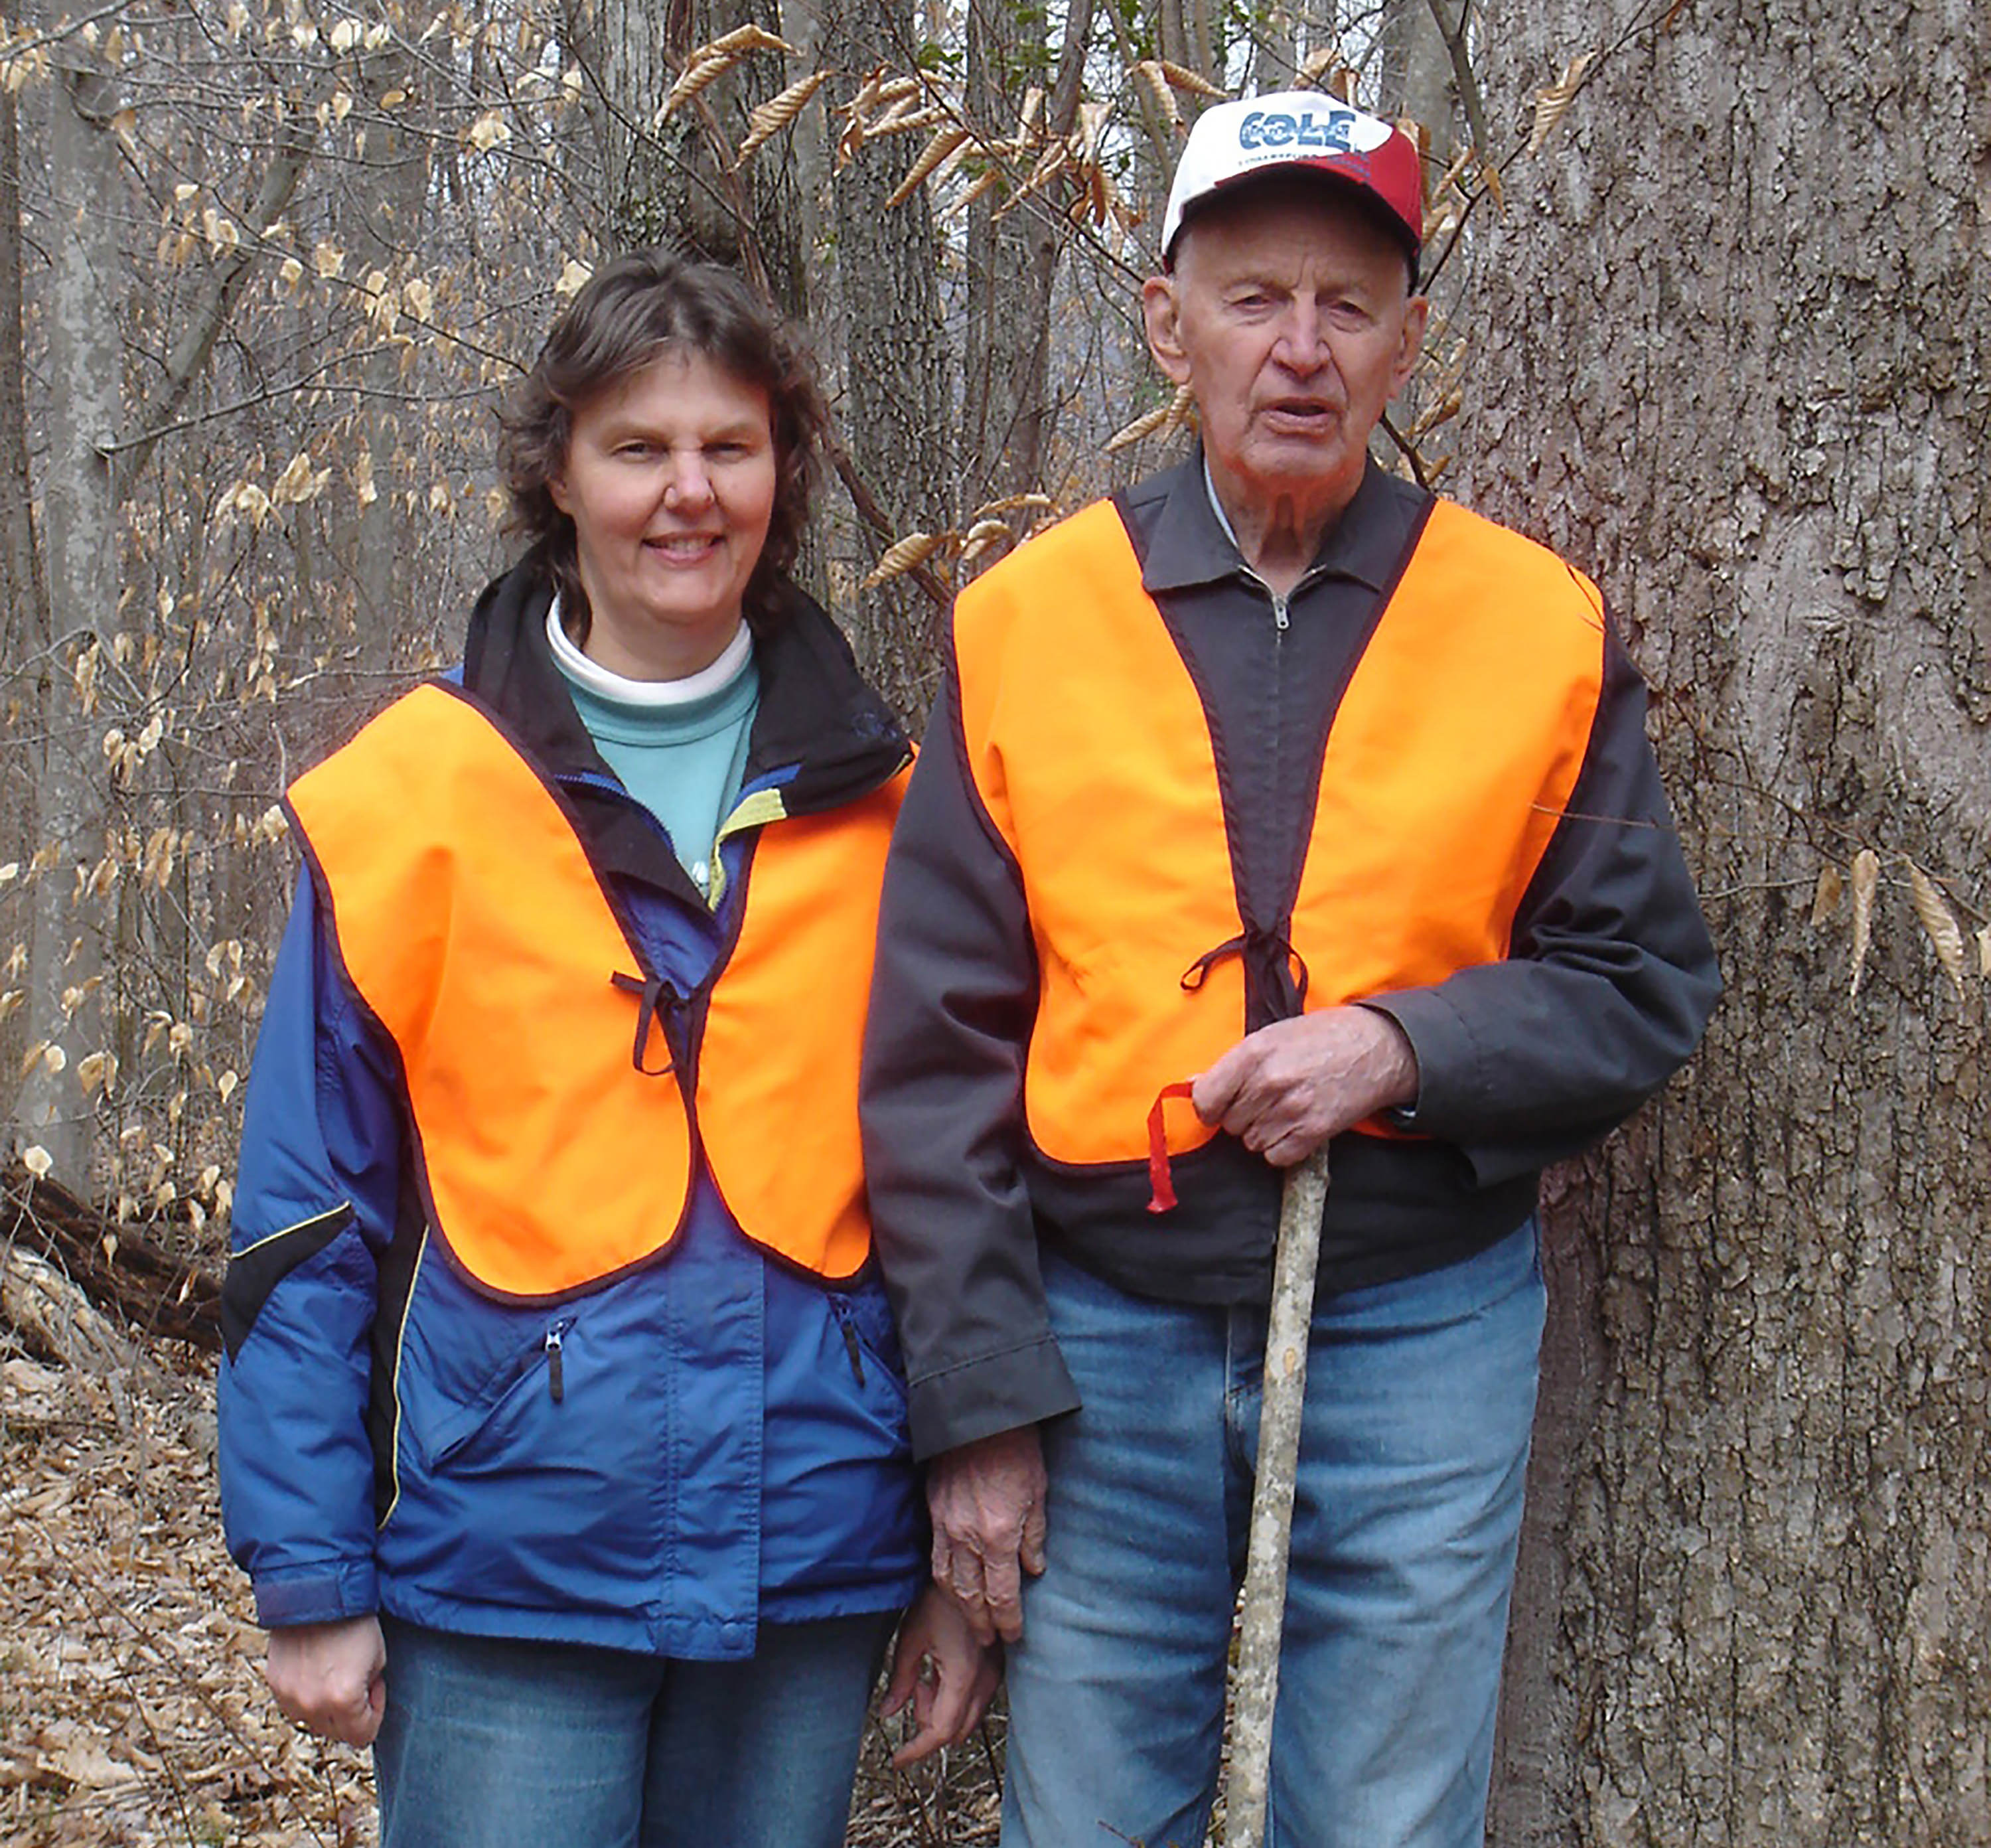 Two people wearing orange vests stand in a forest.